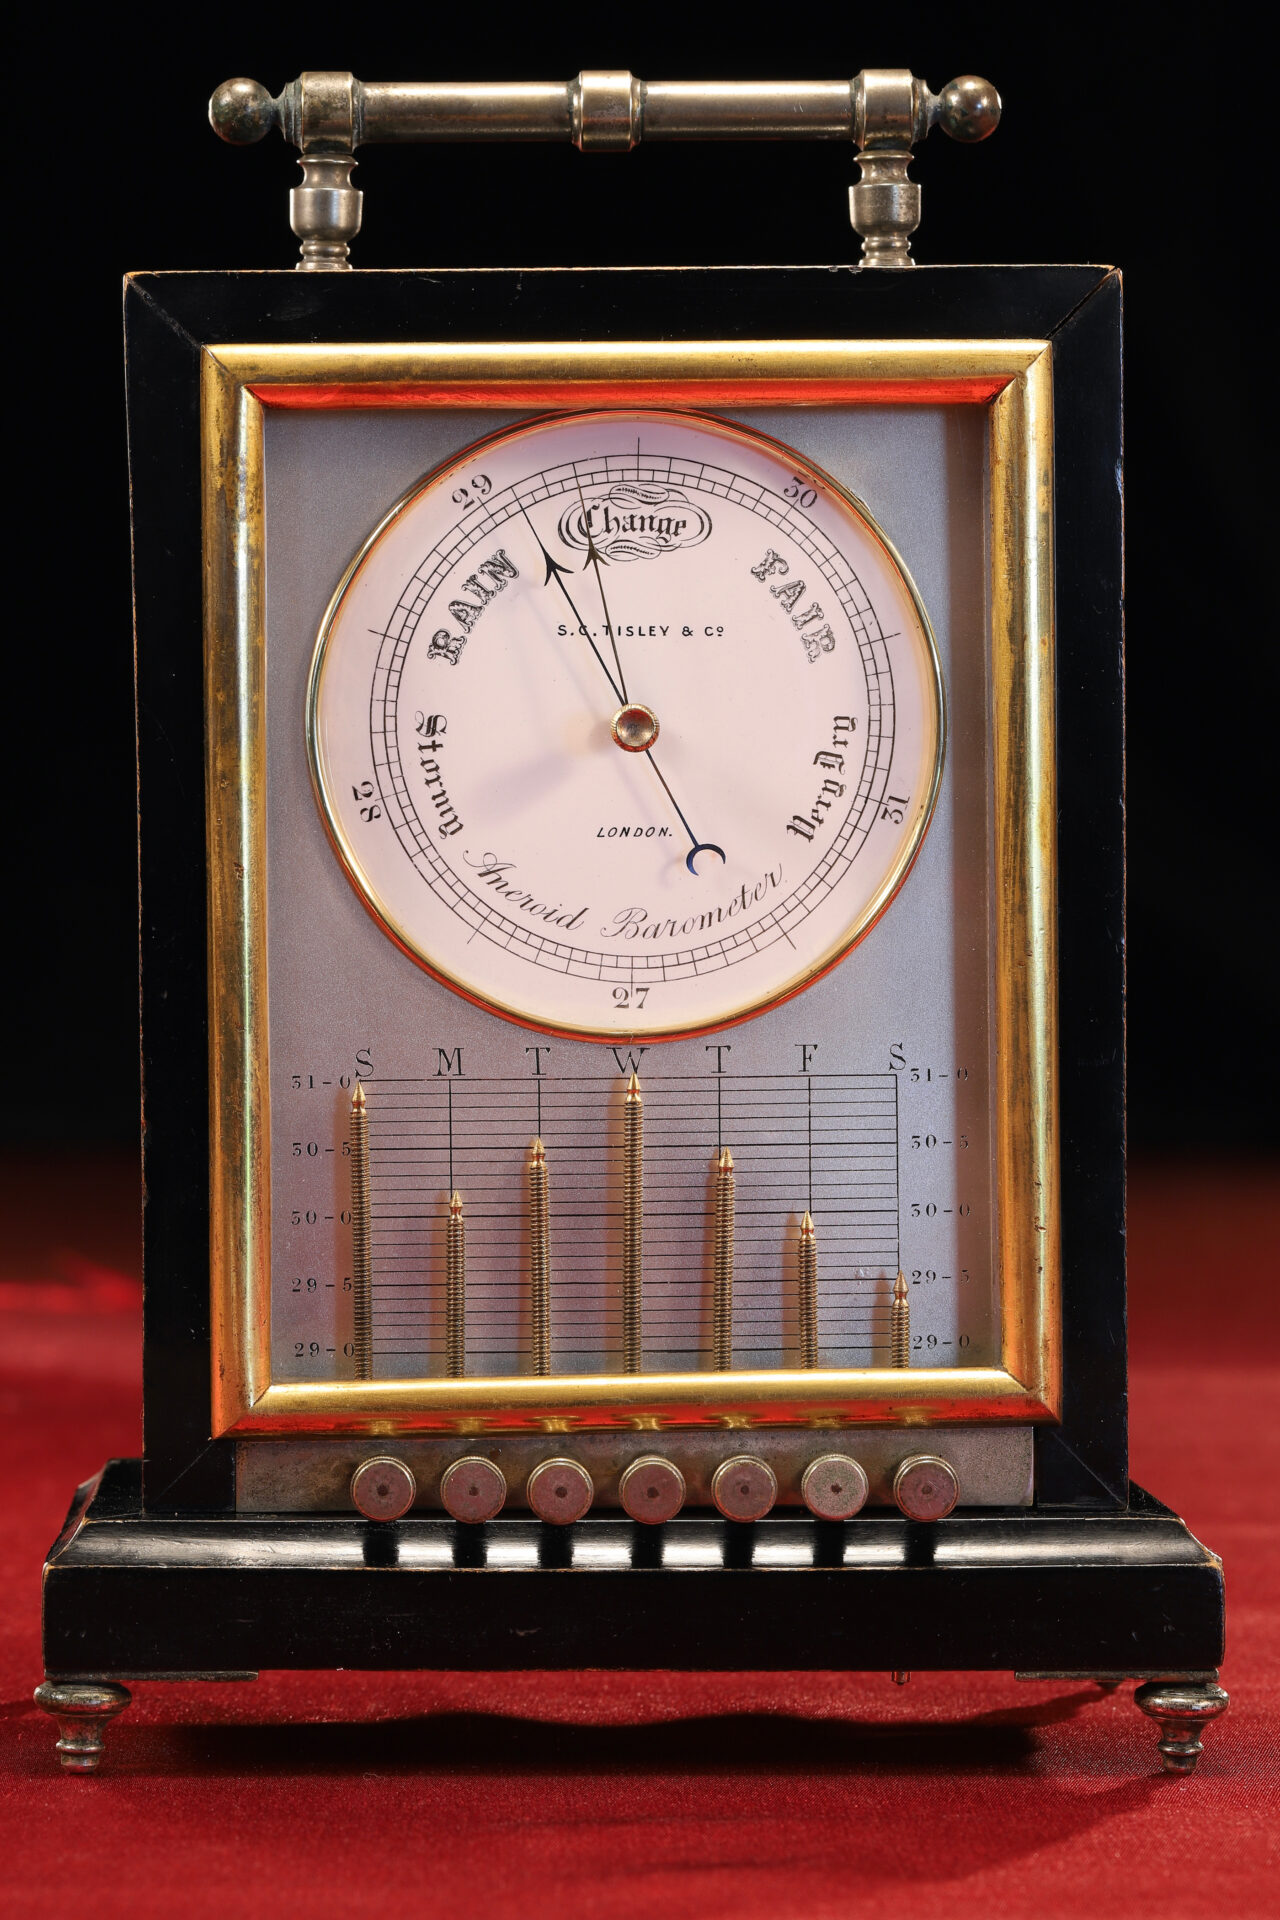 Image of Ebonised Recording Aneroid Barometer or Barograph c1878 taken from front